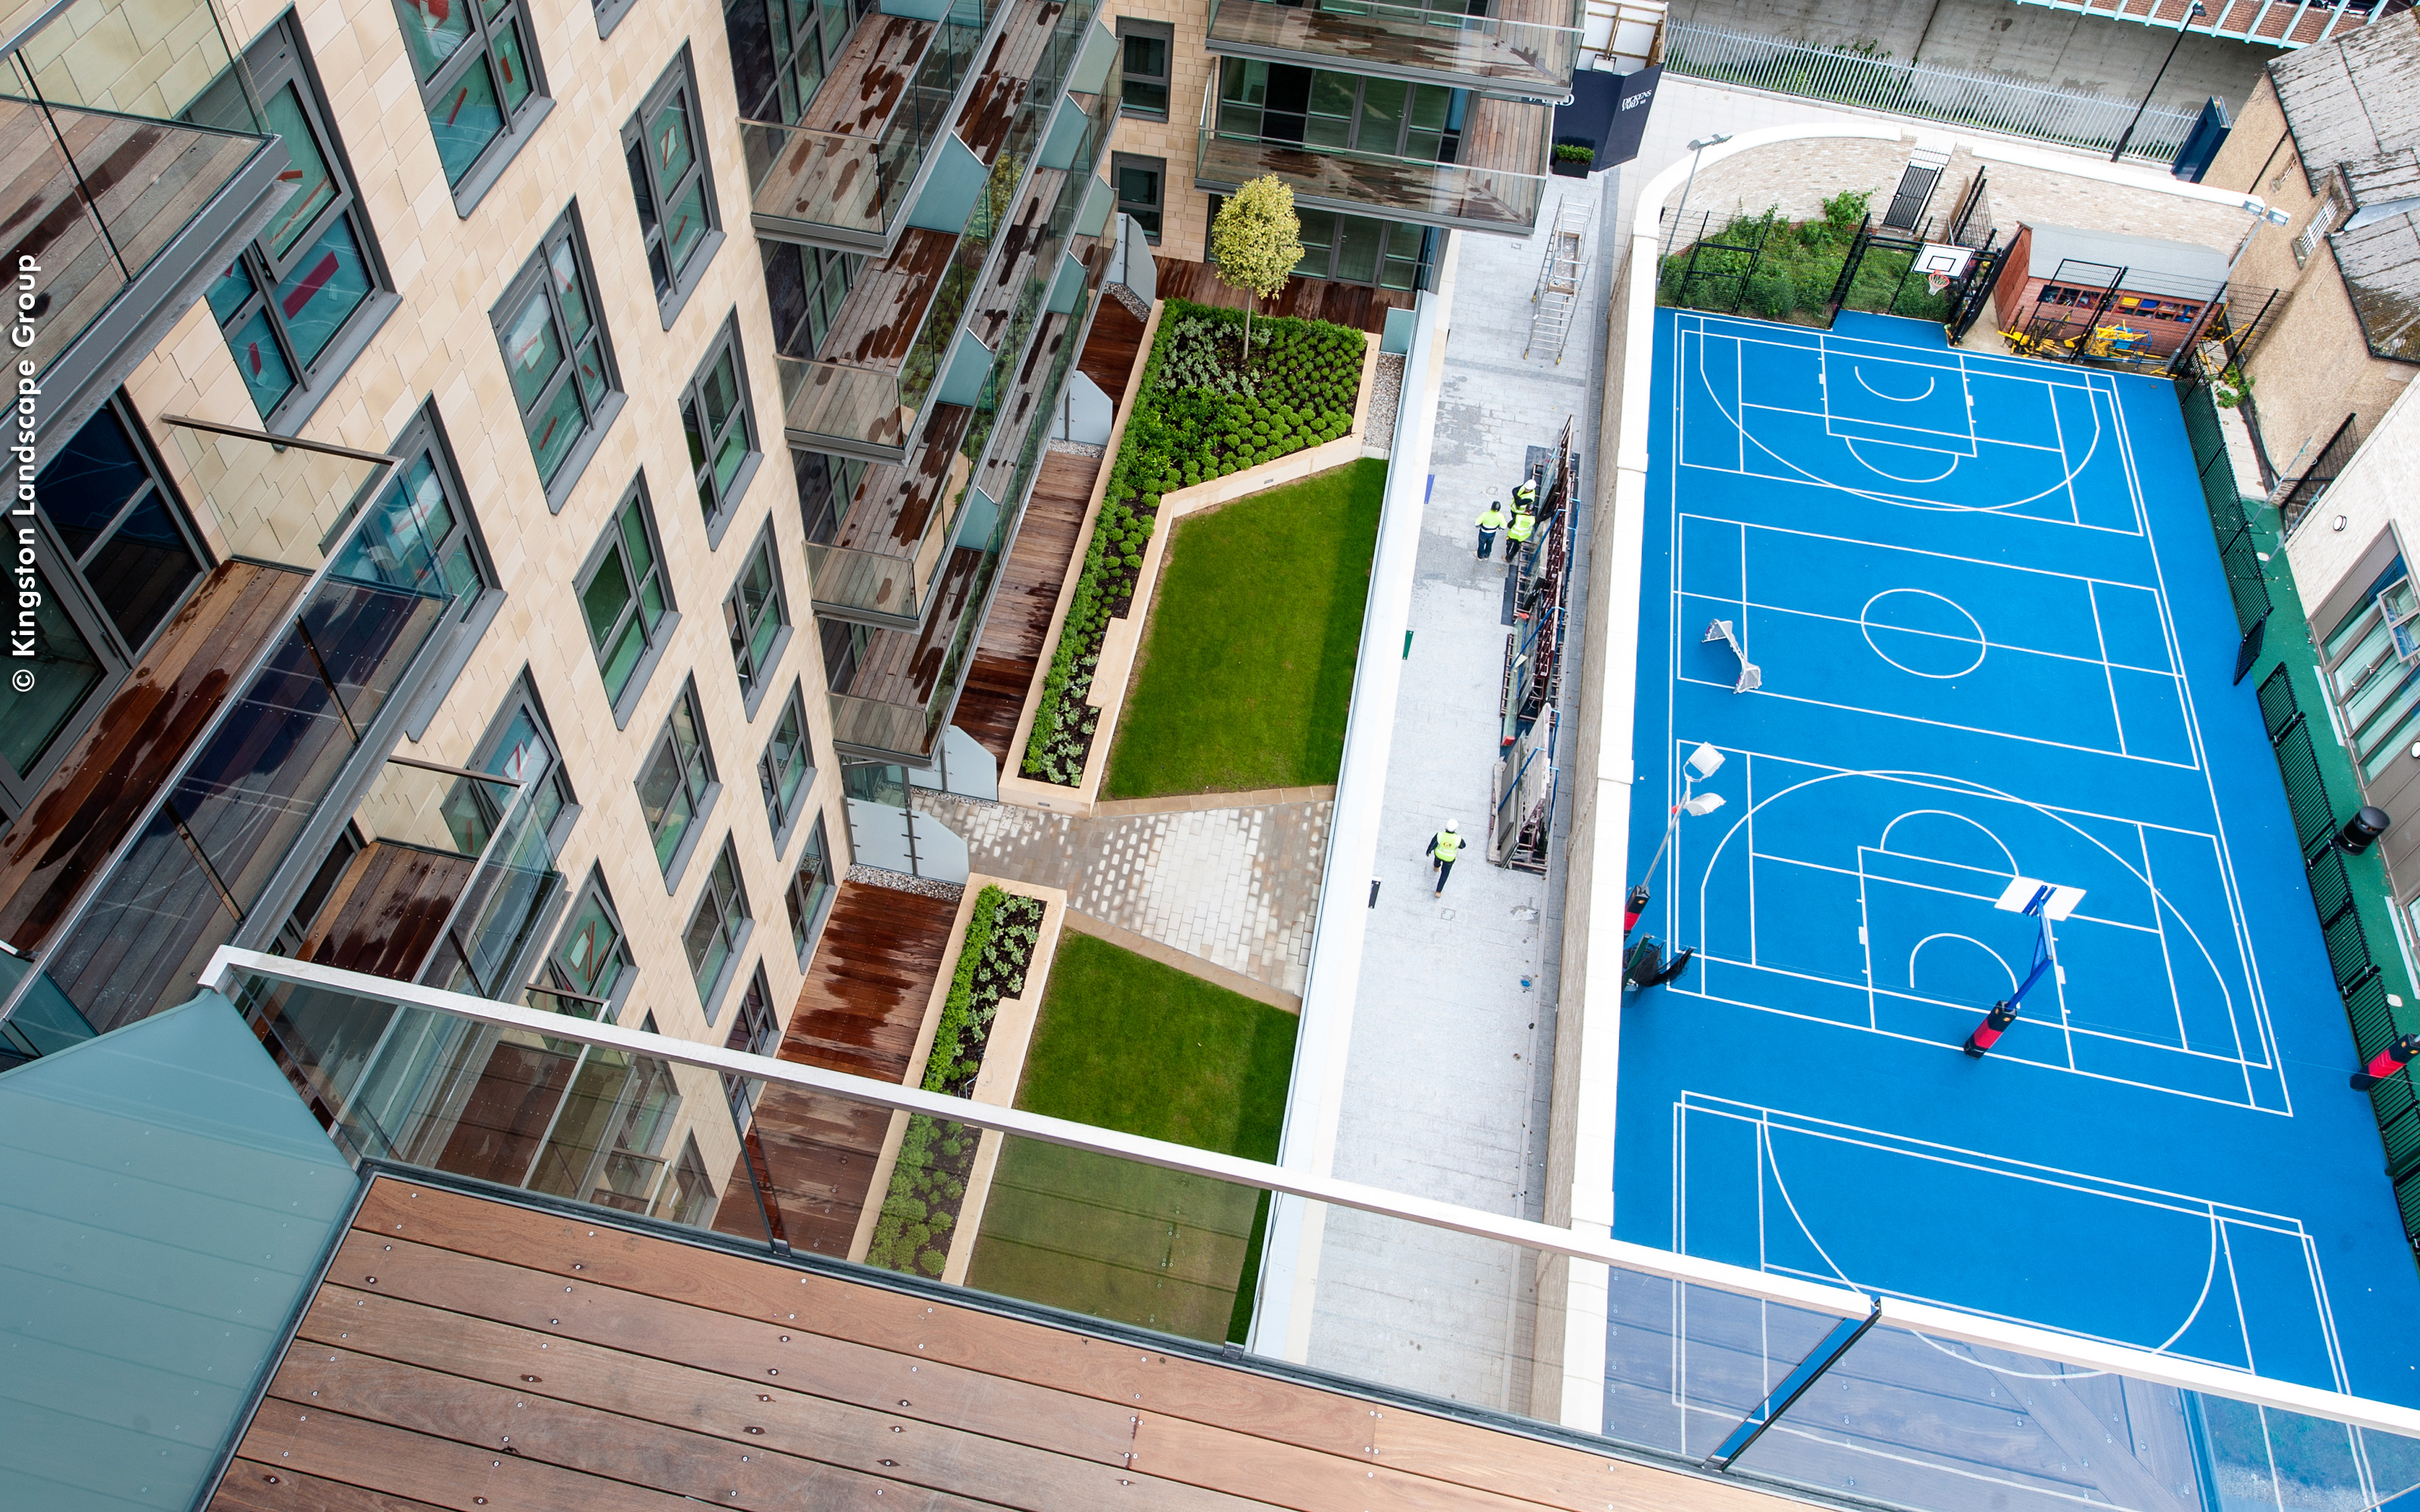 Bird's eye view into a green courtyard and a basketball court